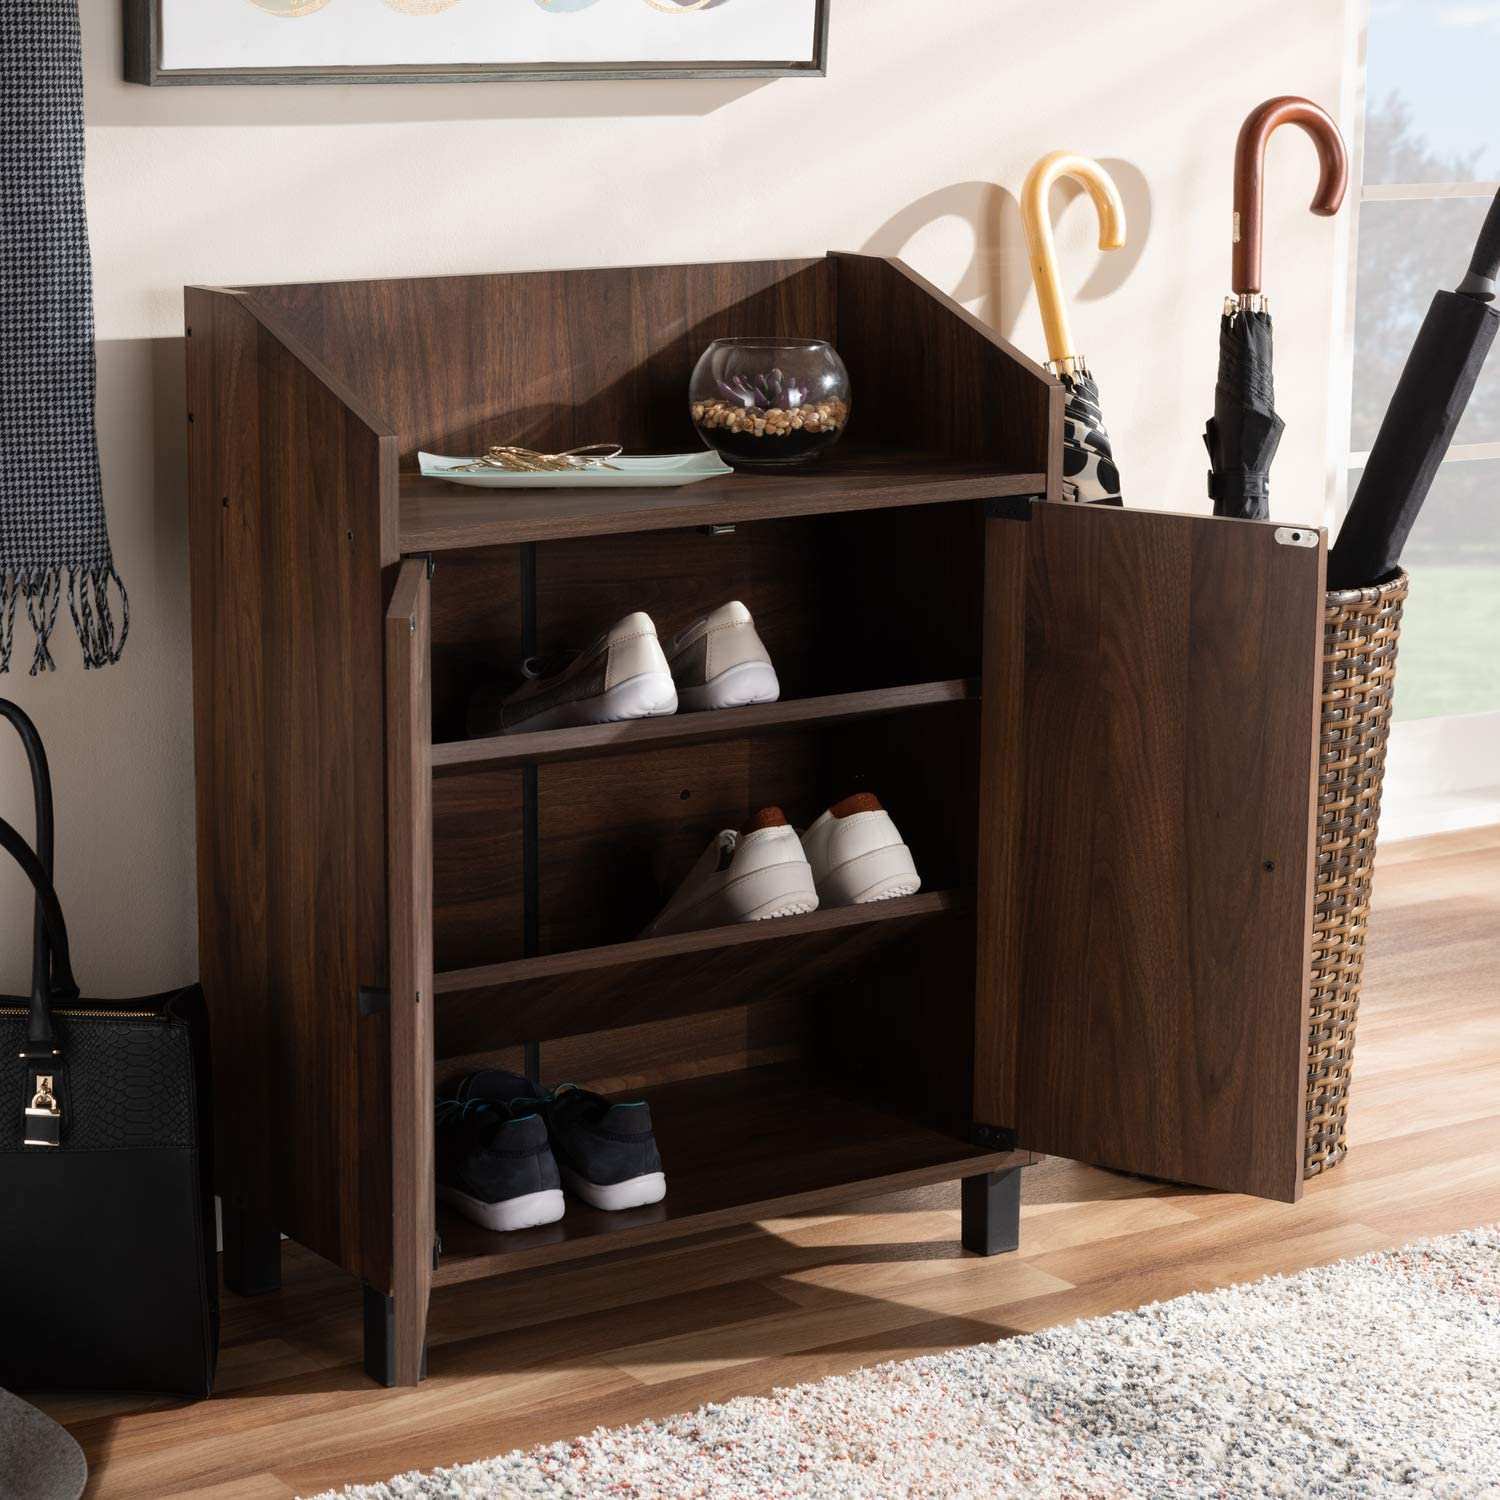 Amazon Com Baxton Studio Rossin Modern And Contemporary Walnut Brown Finished 2 Door Wood Entryway Shoe Storage Cabinet With Open Shelf Office Products